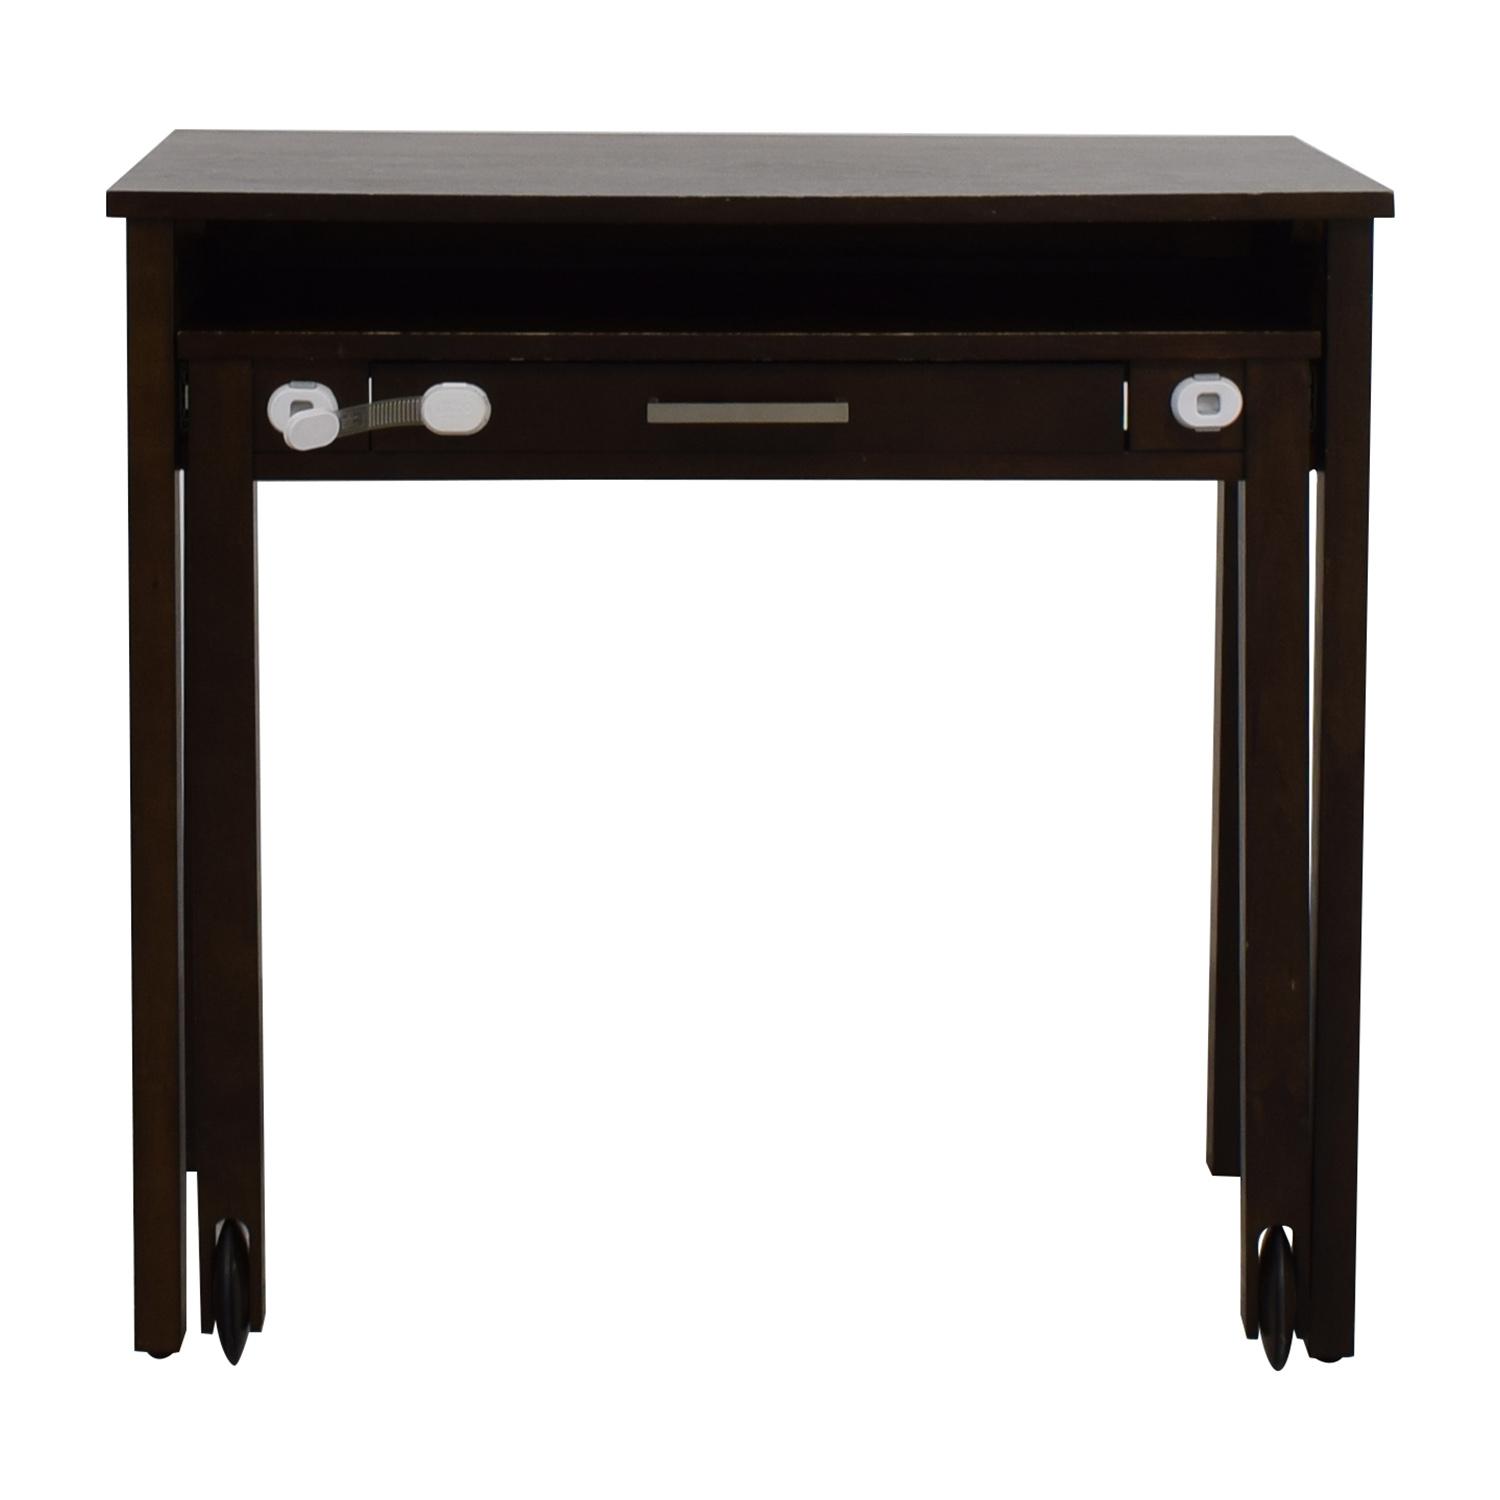 Crate & Barrel Crate & Barrel Wooden Multi-Drawer Desk